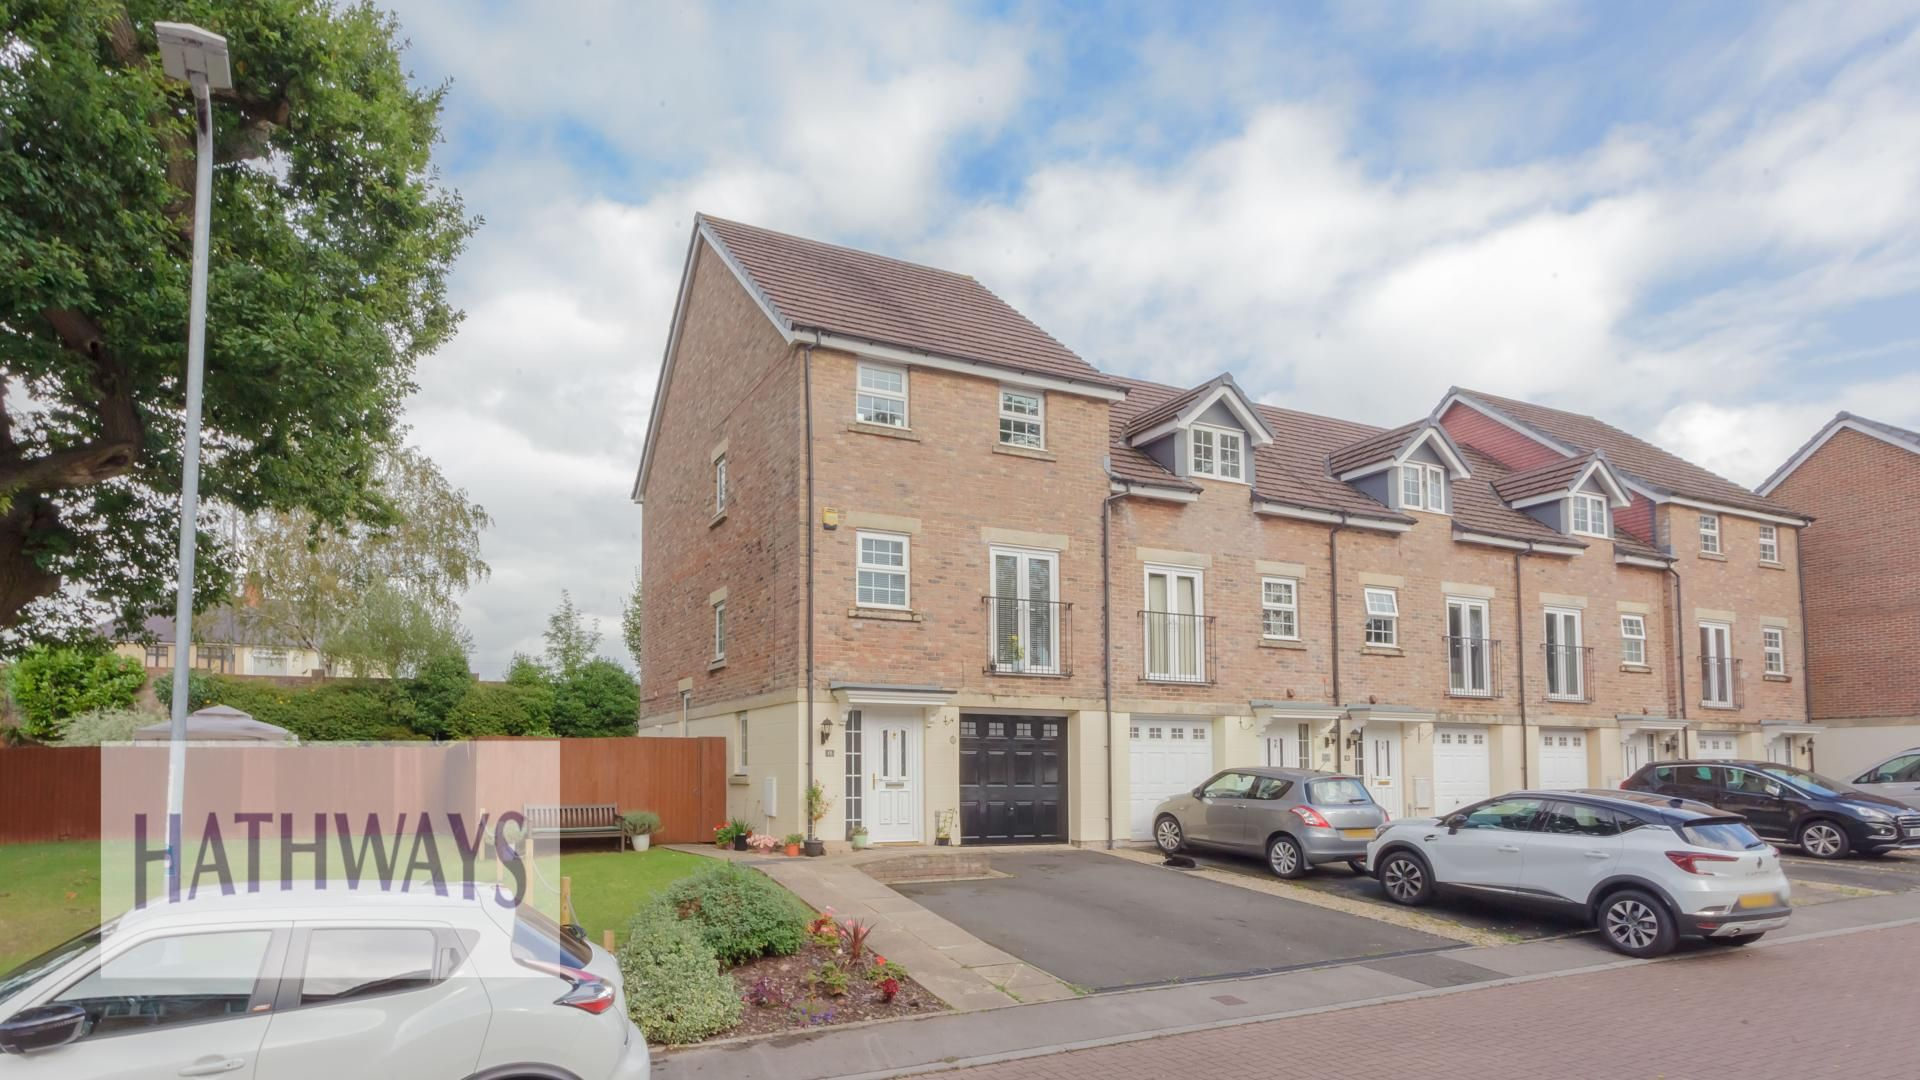 4 bed house for sale in Westfield Gardens, NP20